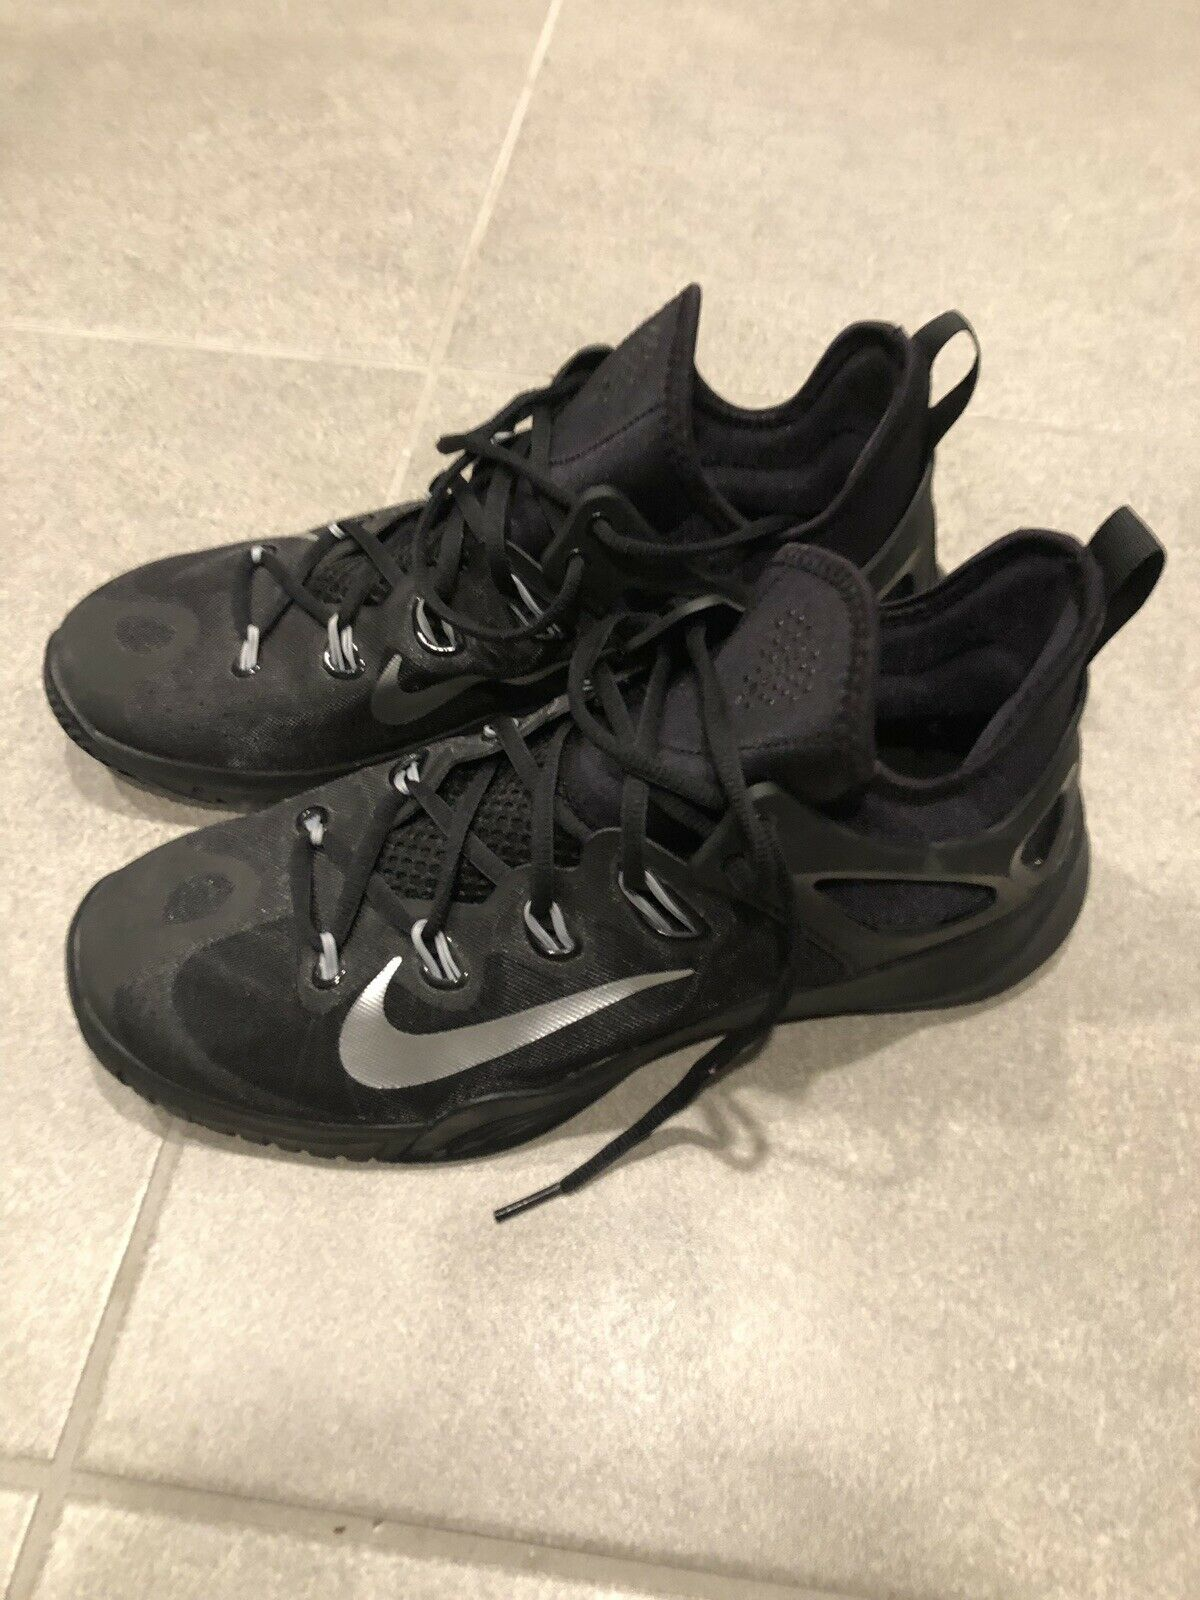 Black Nike Basketball shoes Size 11